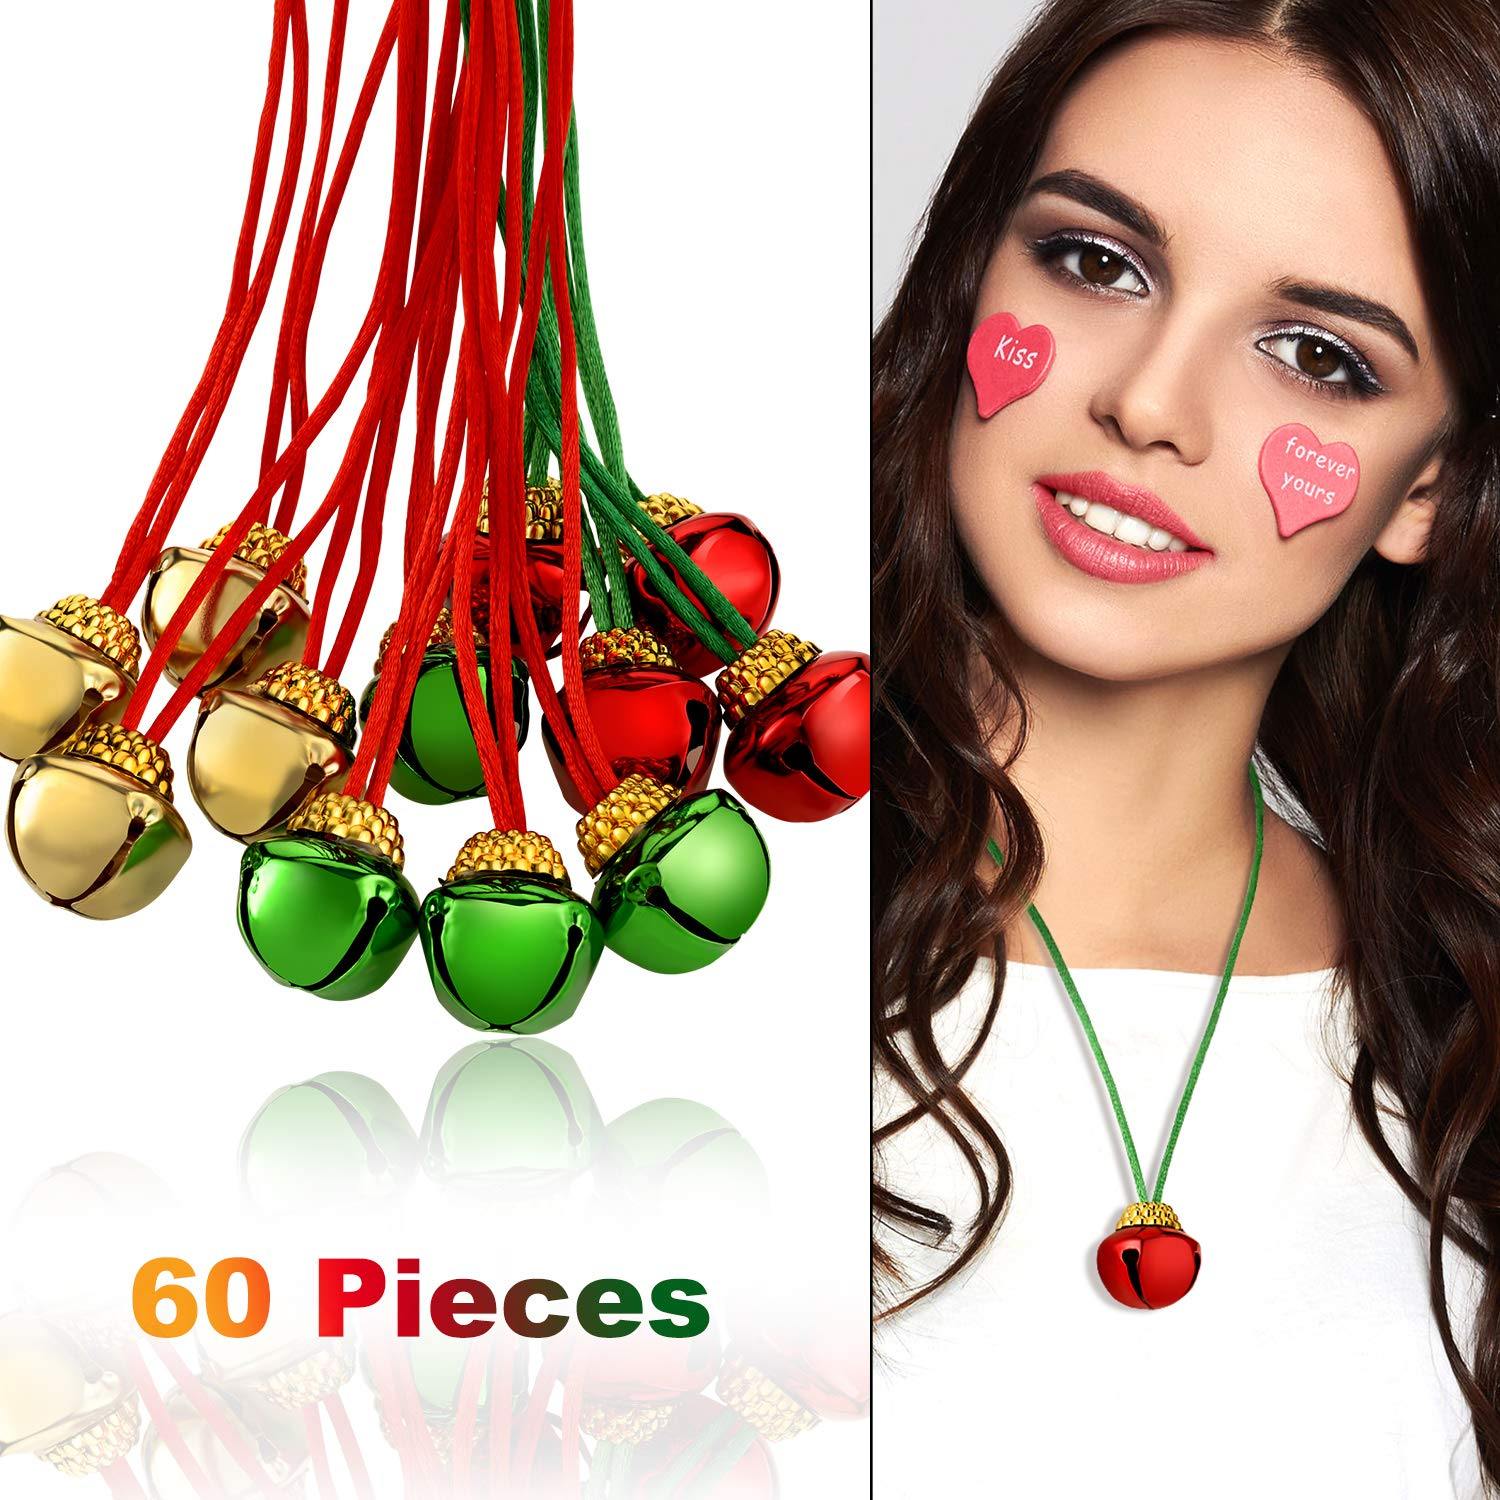 Gejoy 60 Pieces Christmas Bell Necklaces Christmas Holiday Necklaces for Christmas Party Decoration by Gejoy